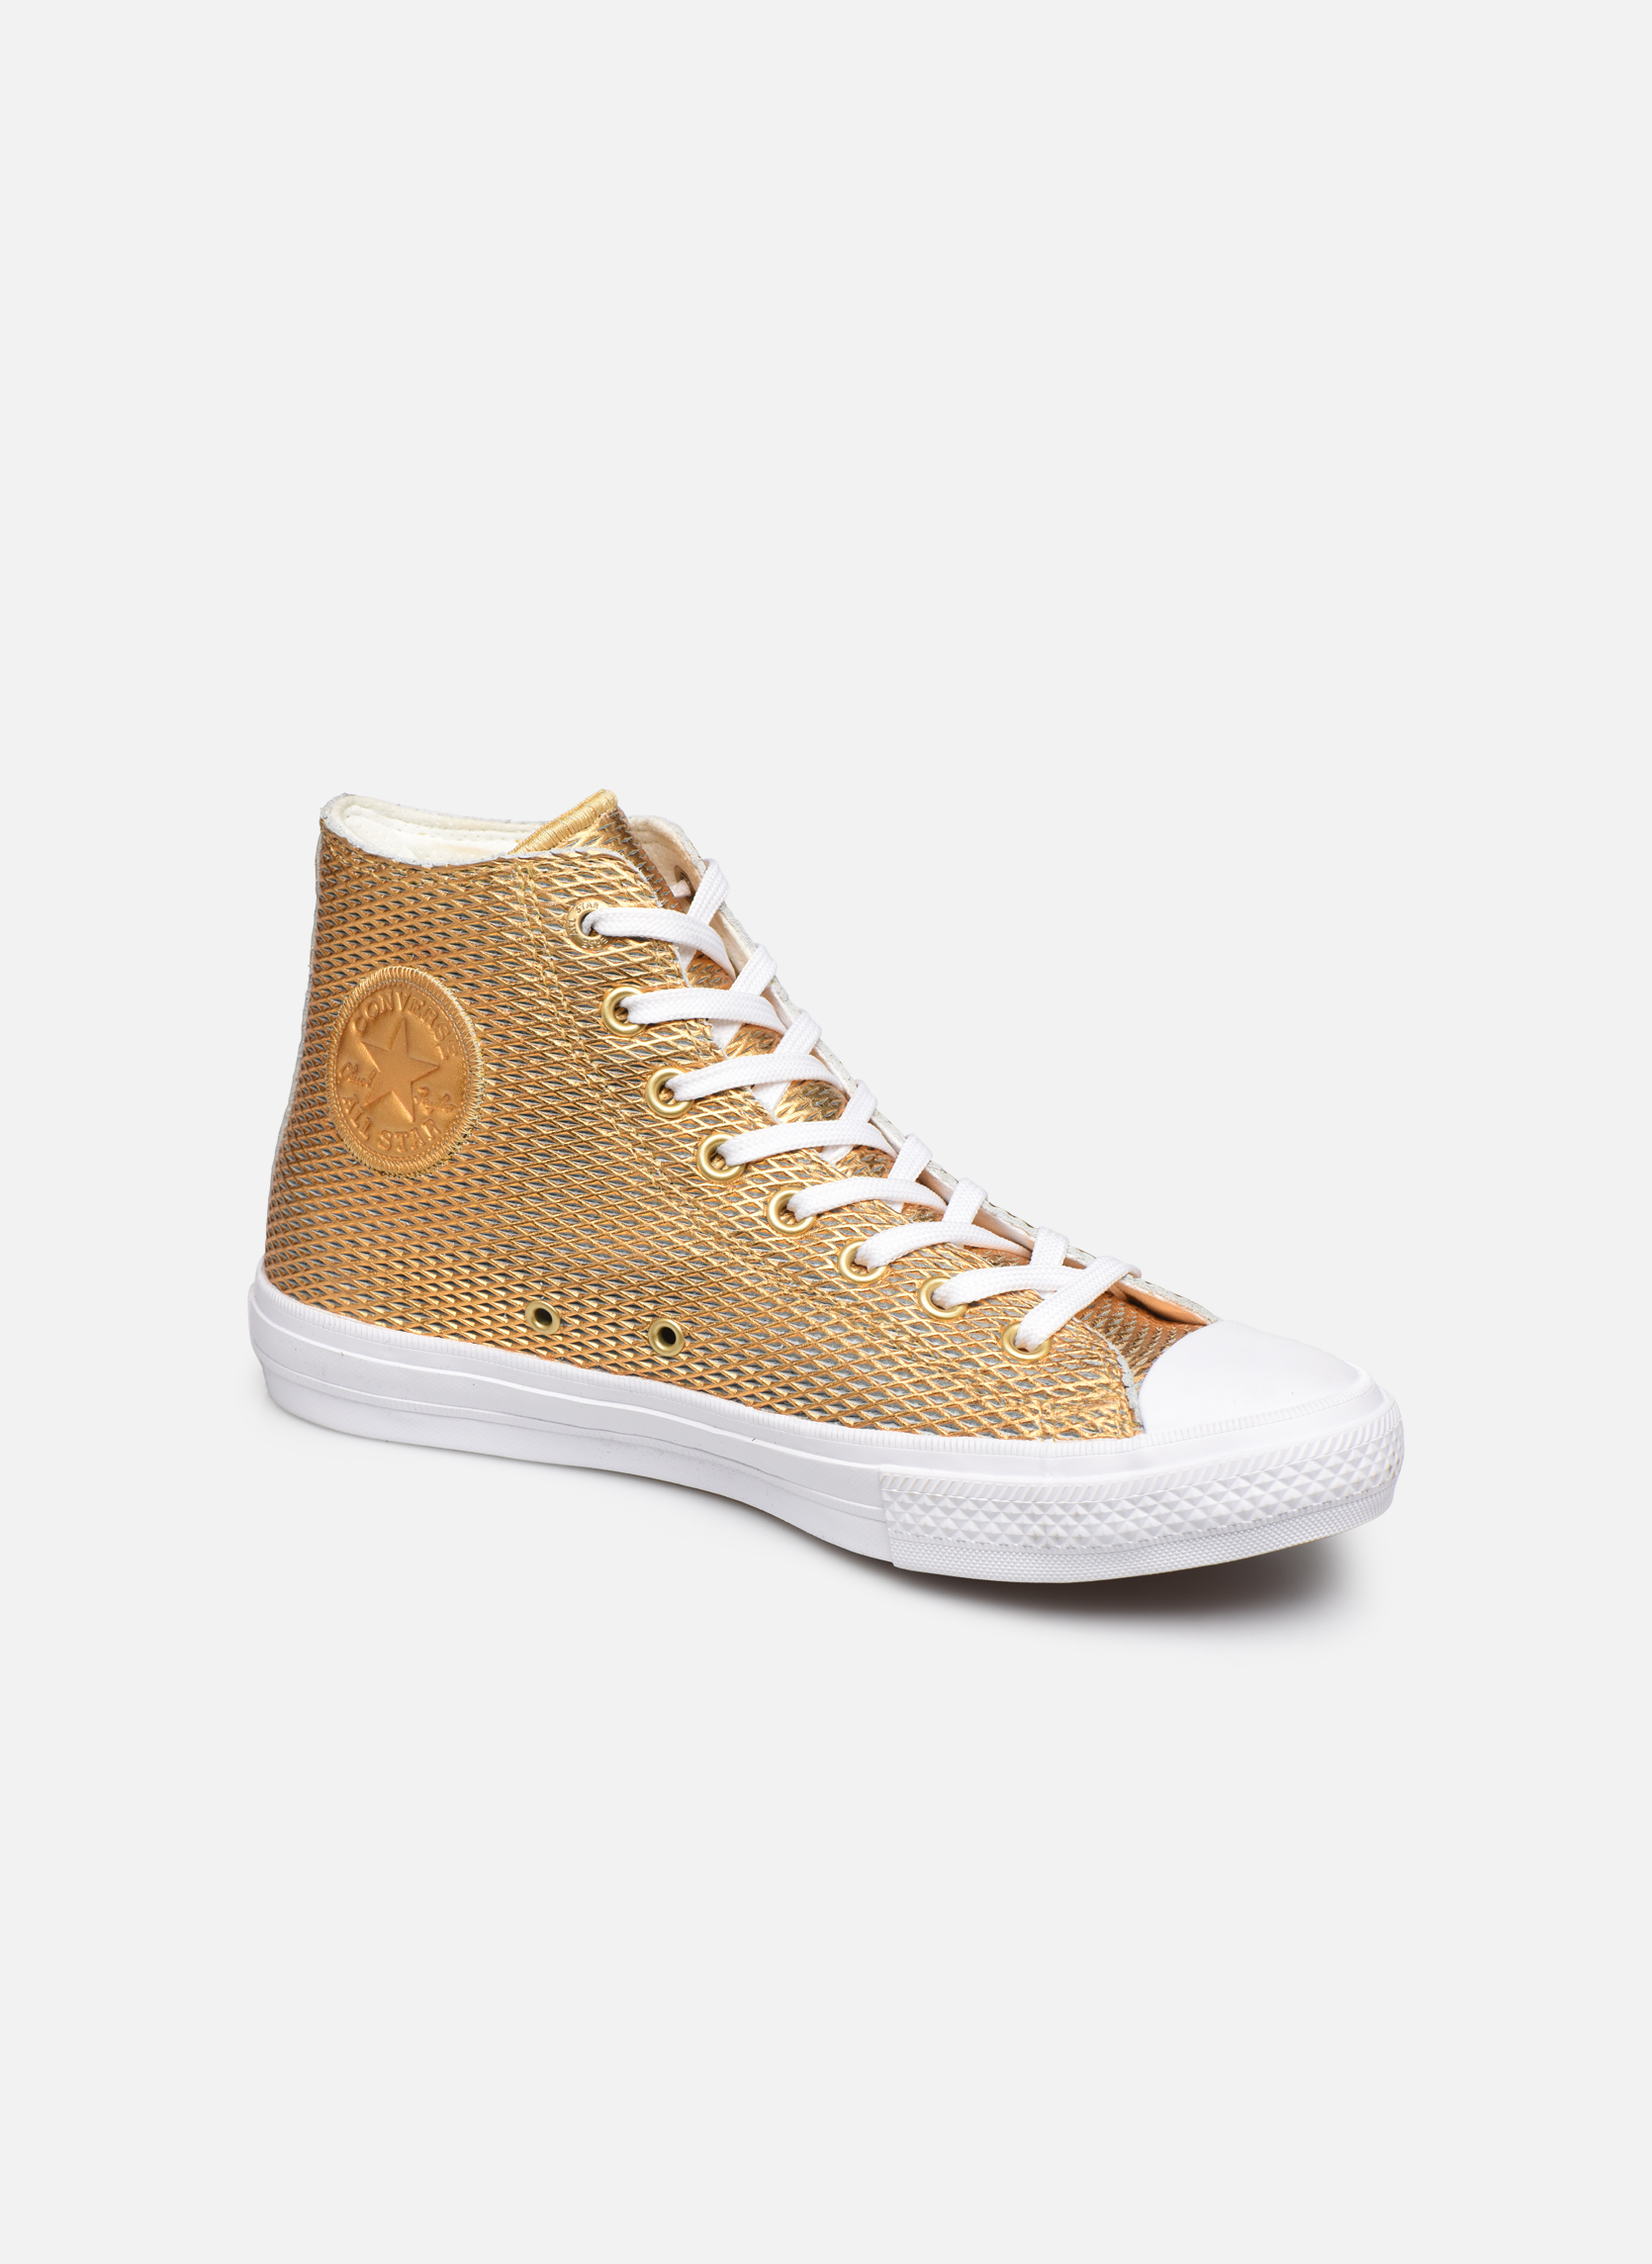 Sneaker Damen Chuck Taylor All Star II Hi Perf Metallic Leather